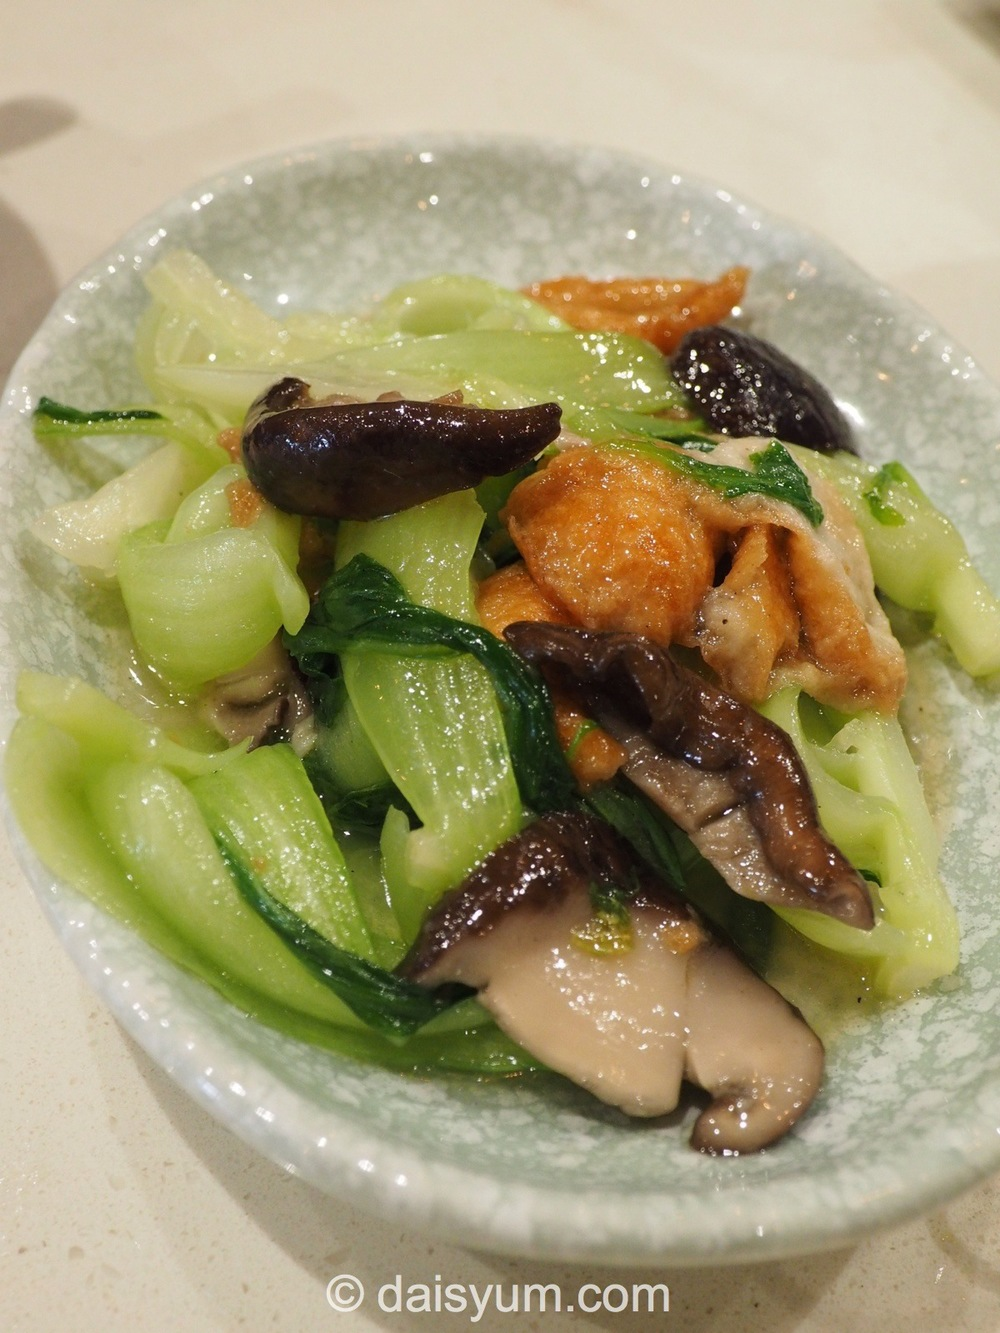 Chinese cabbage cooked with mushrooms and chinese donuts